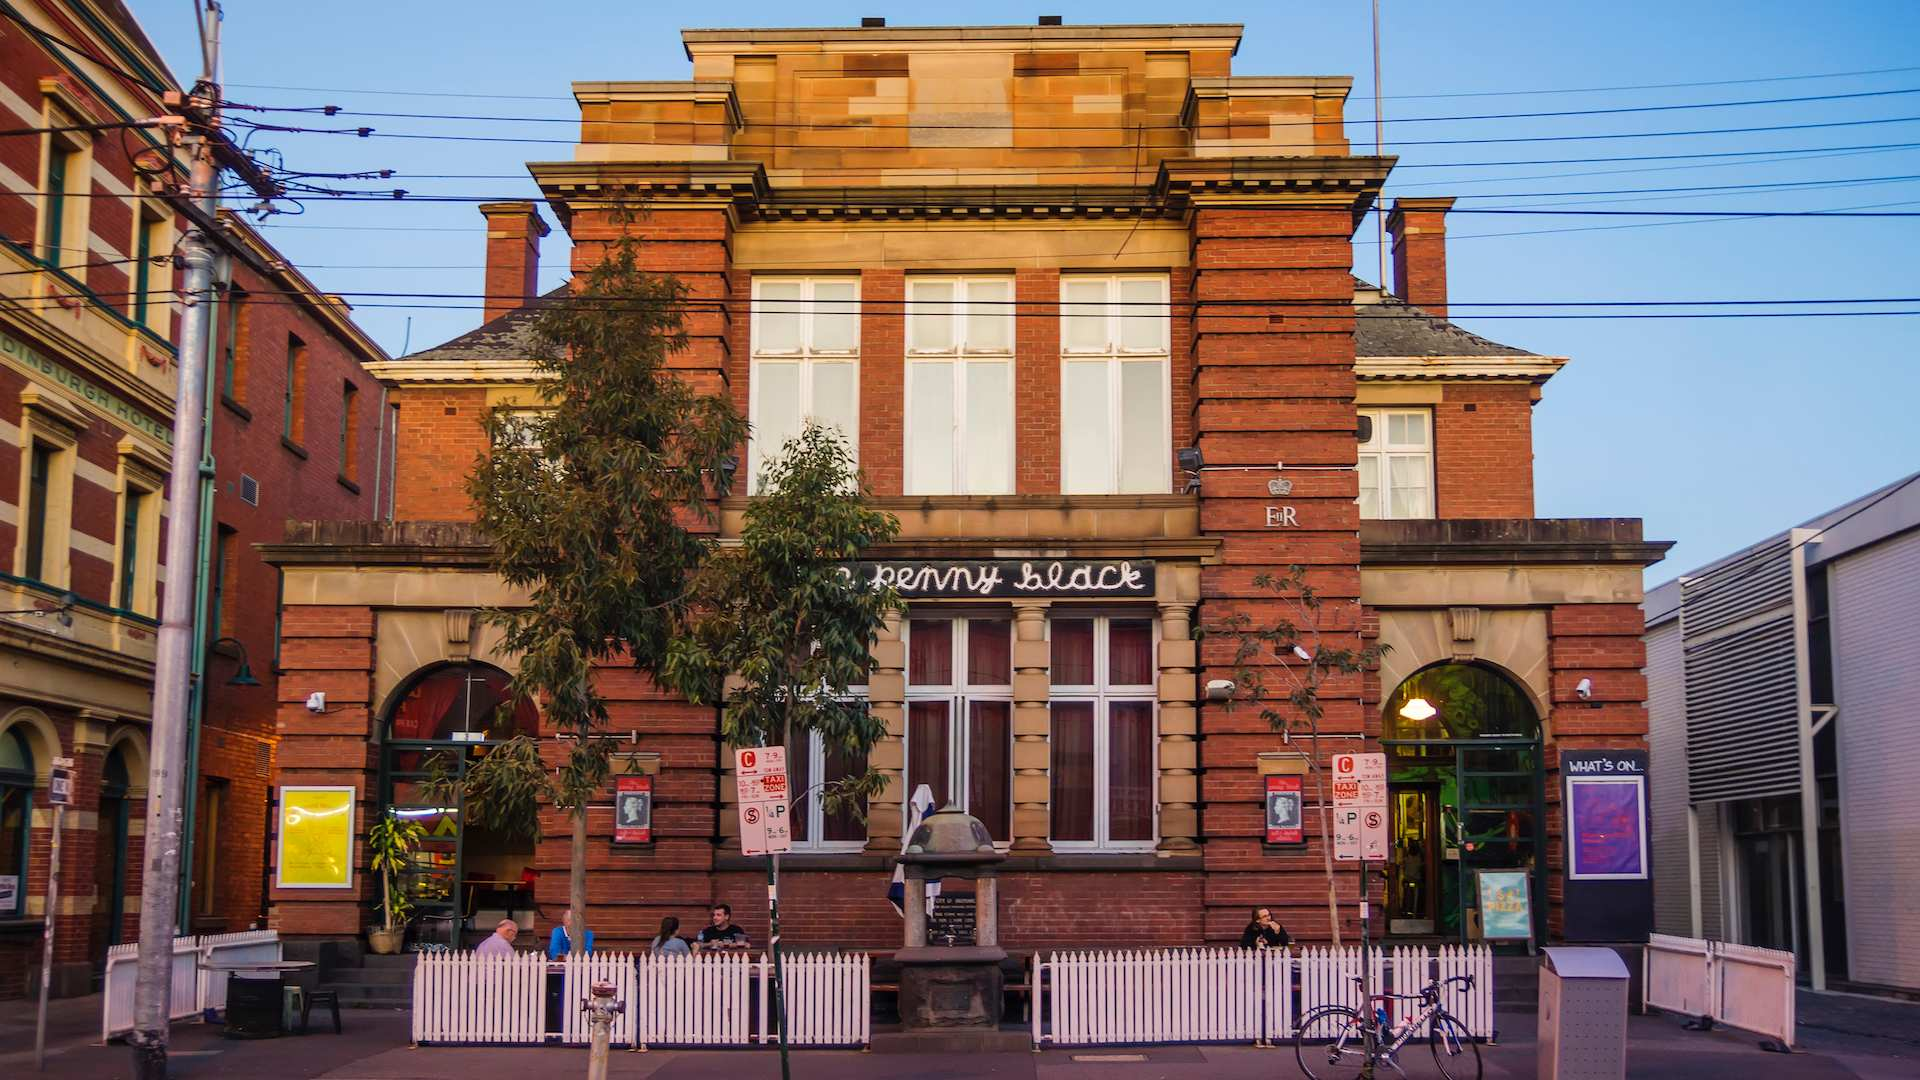 The Newly Revamped Penny Black Is Set to Reopen as Part of Welcome To Brunswick